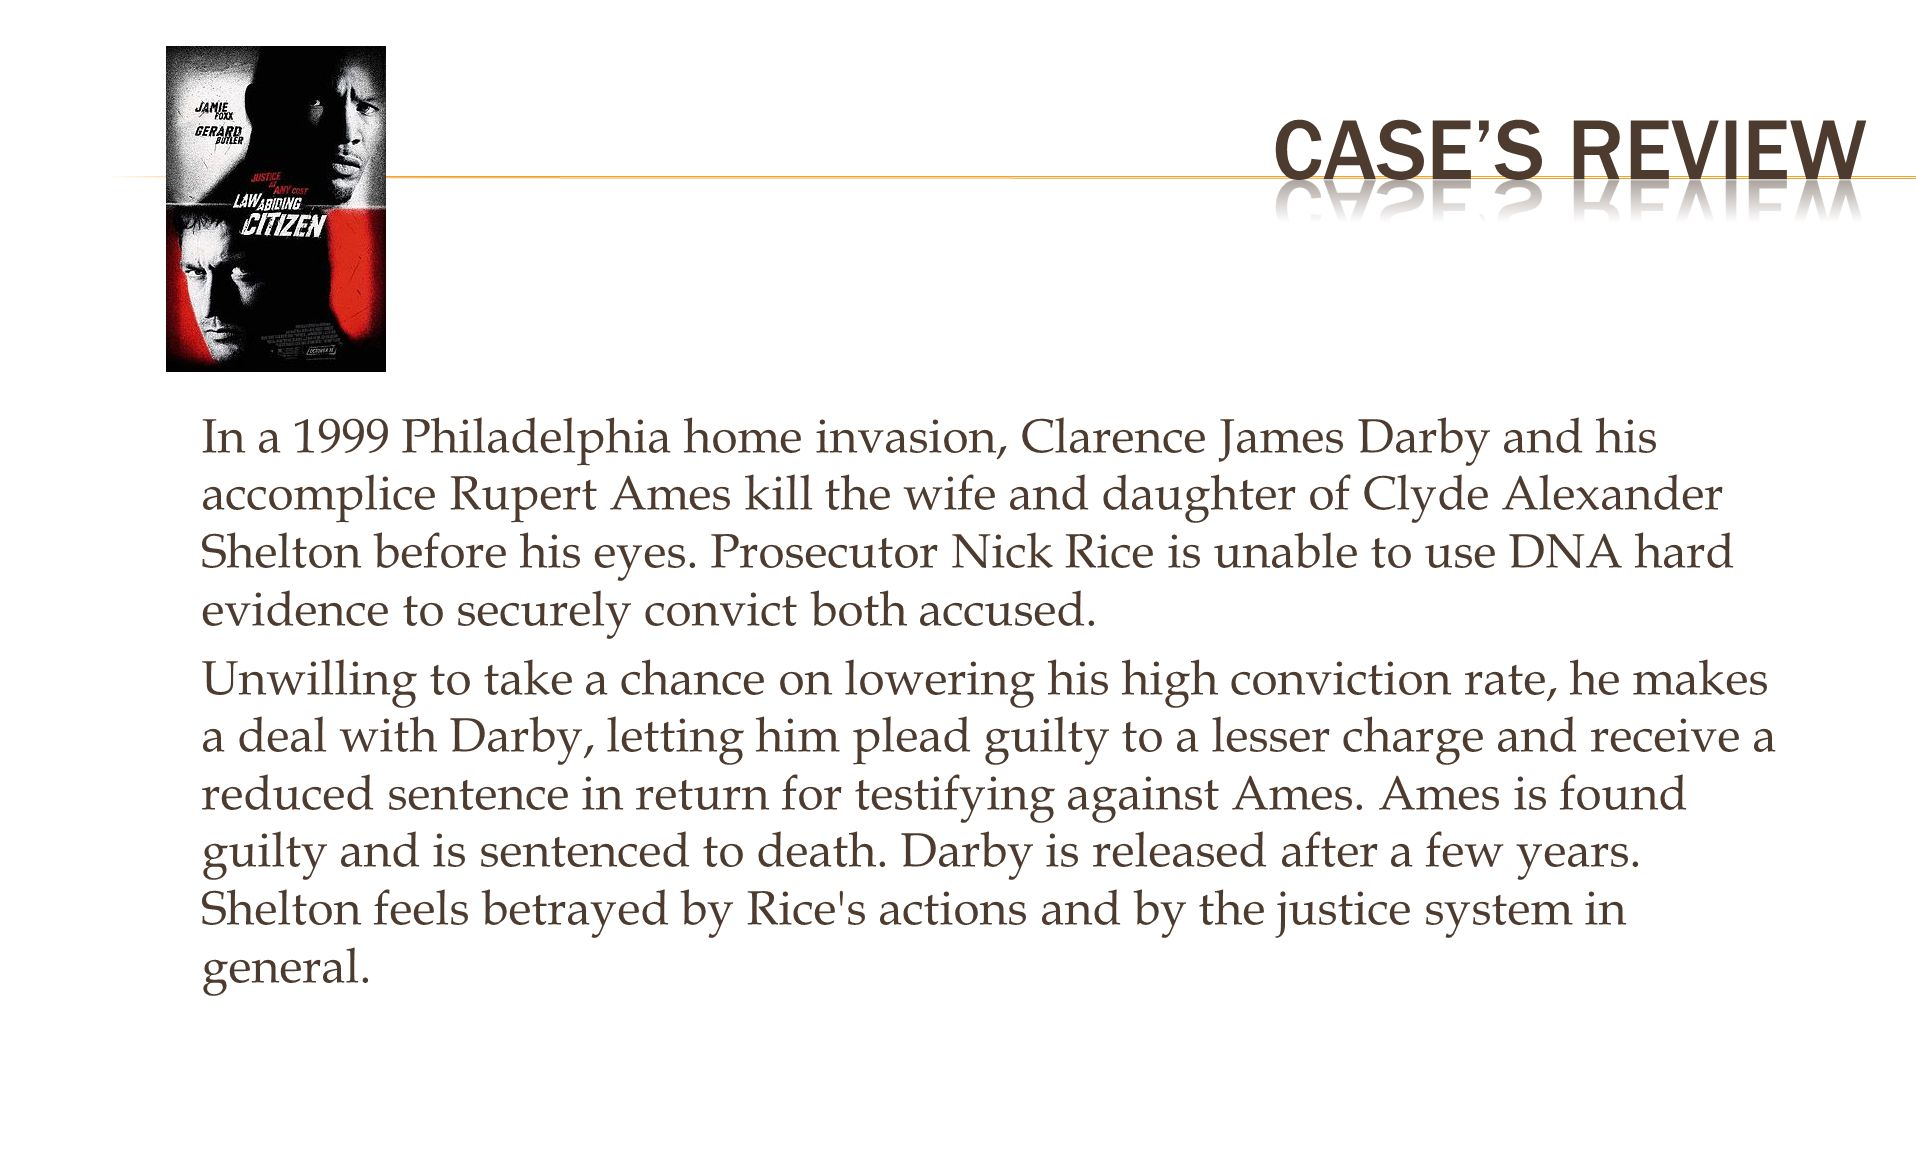 In a 1999 Philadelphia home invasion, Clarence James Darby and his accomplice Rupert Ames kill the wife and daughter of Clyde Alexander Shelton before his eyes.